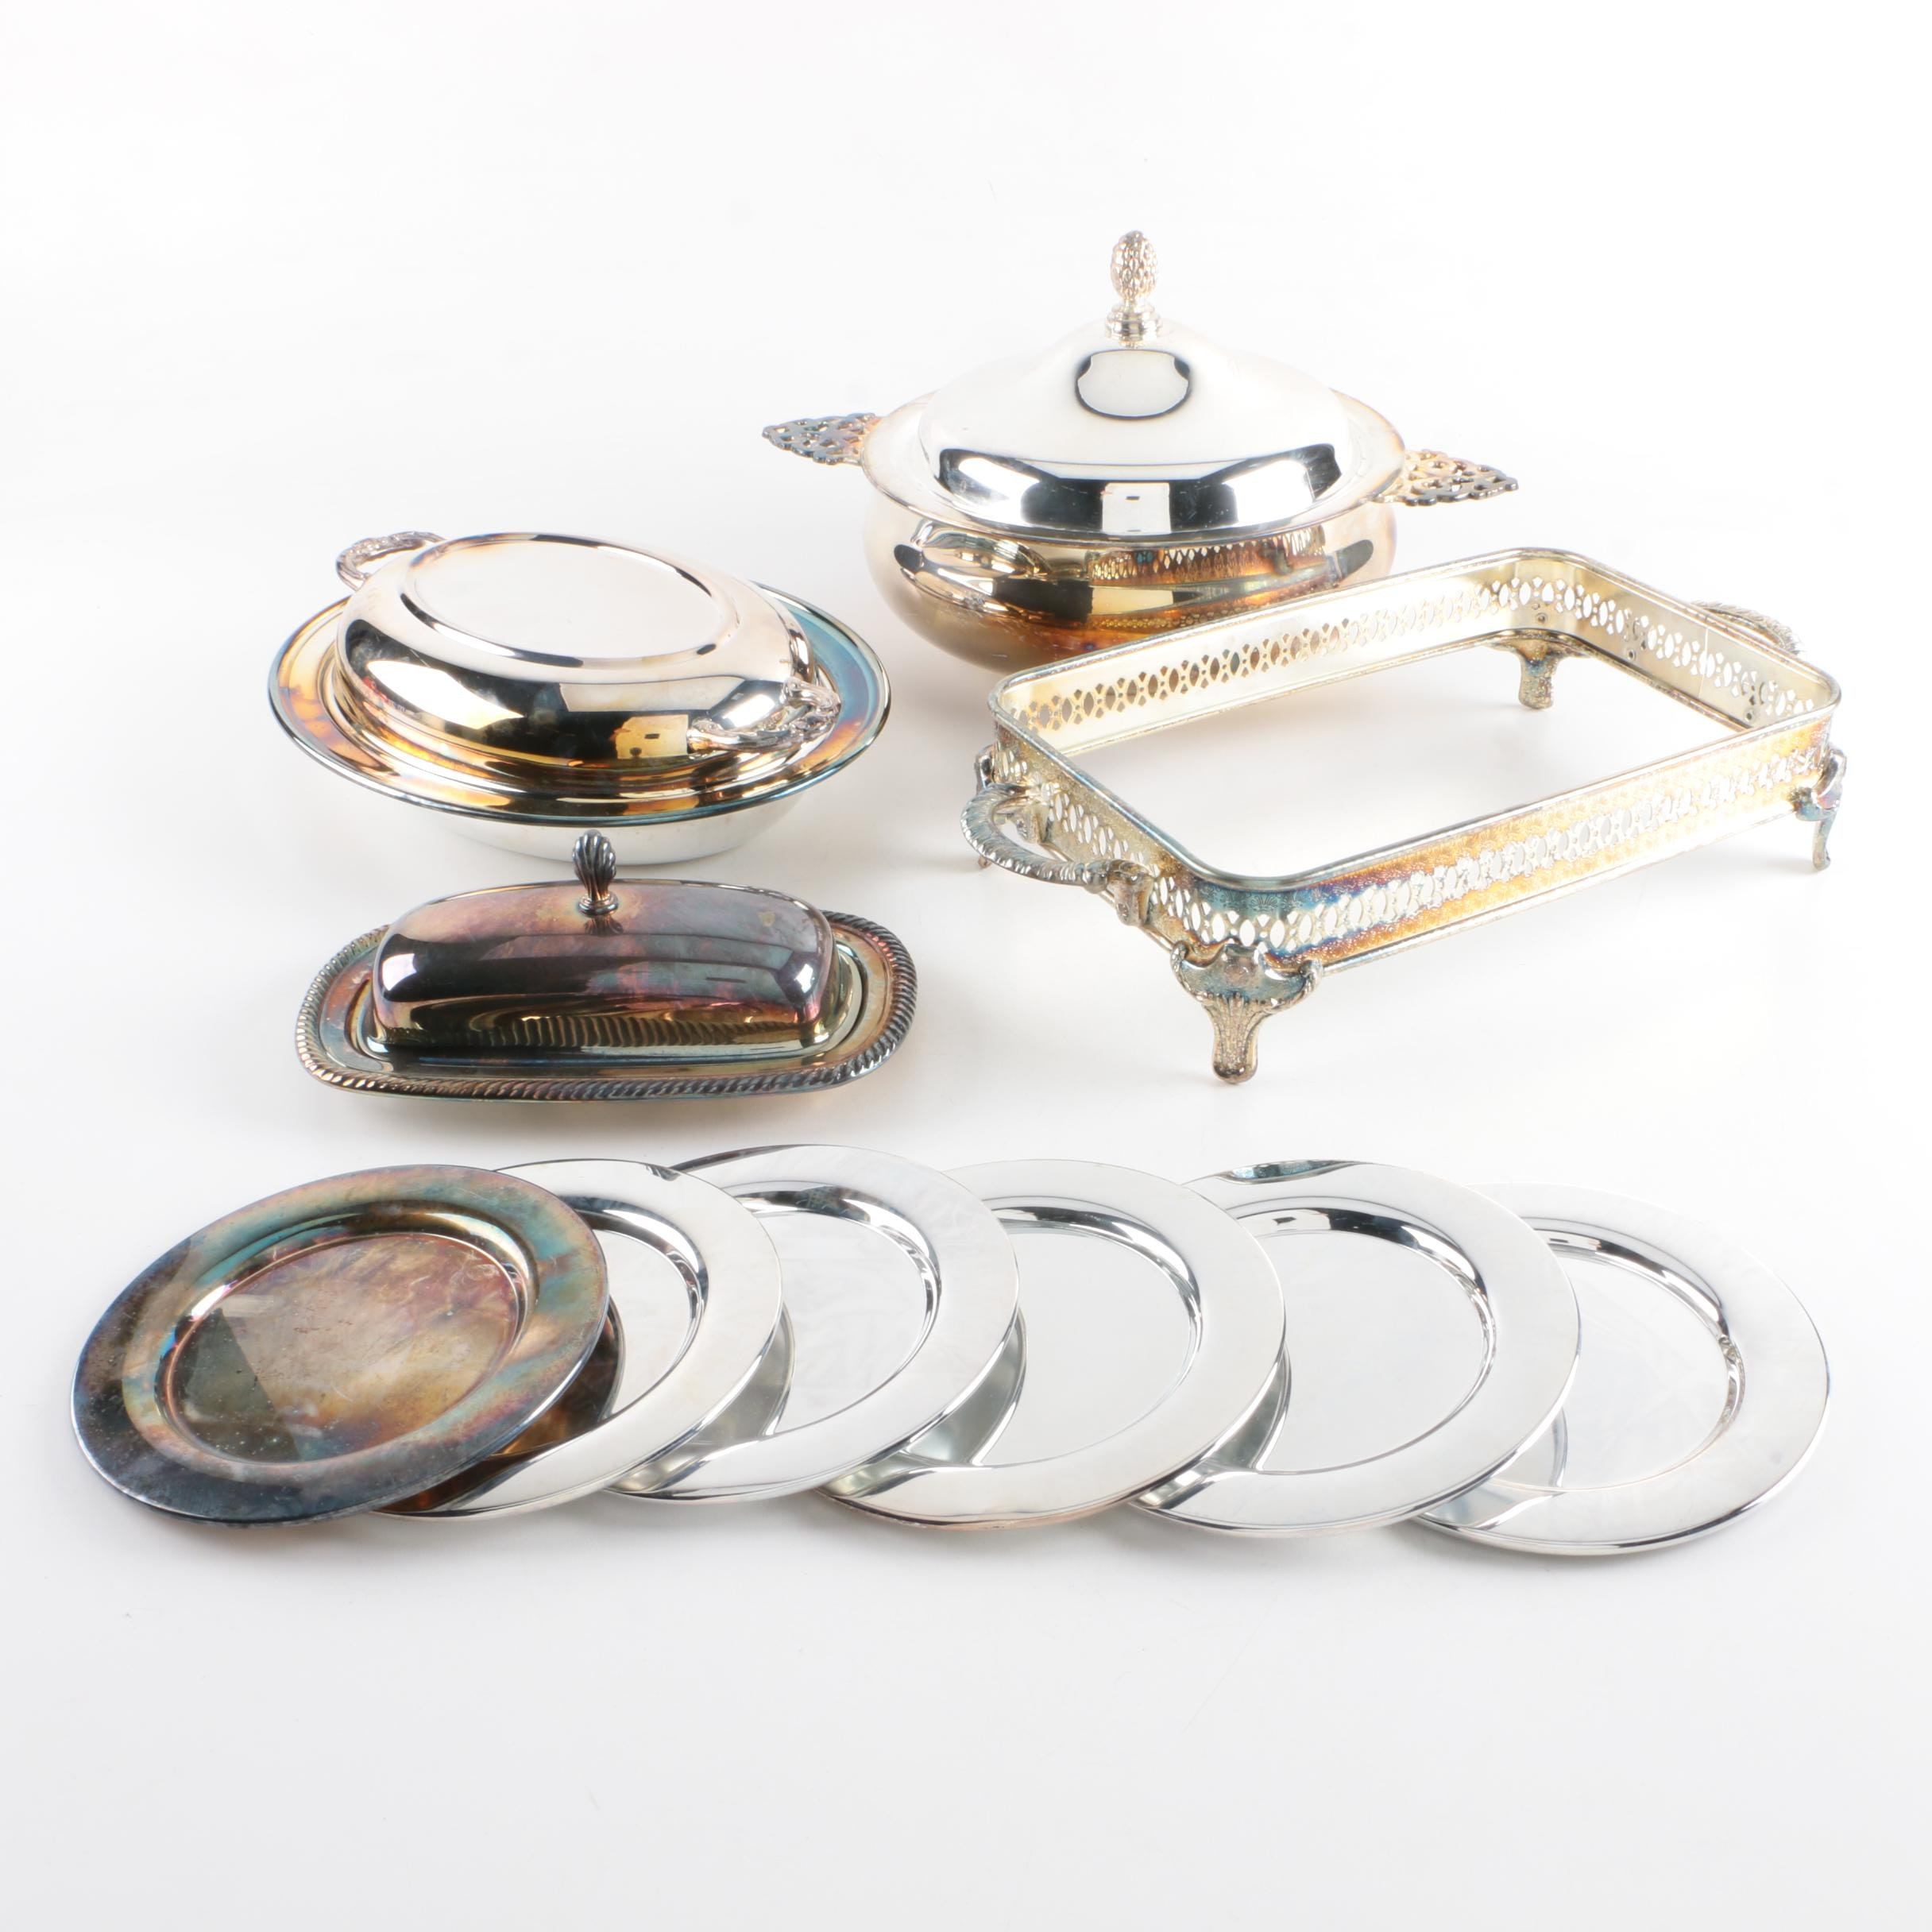 Oneida and Other Silver-Plated Tableware